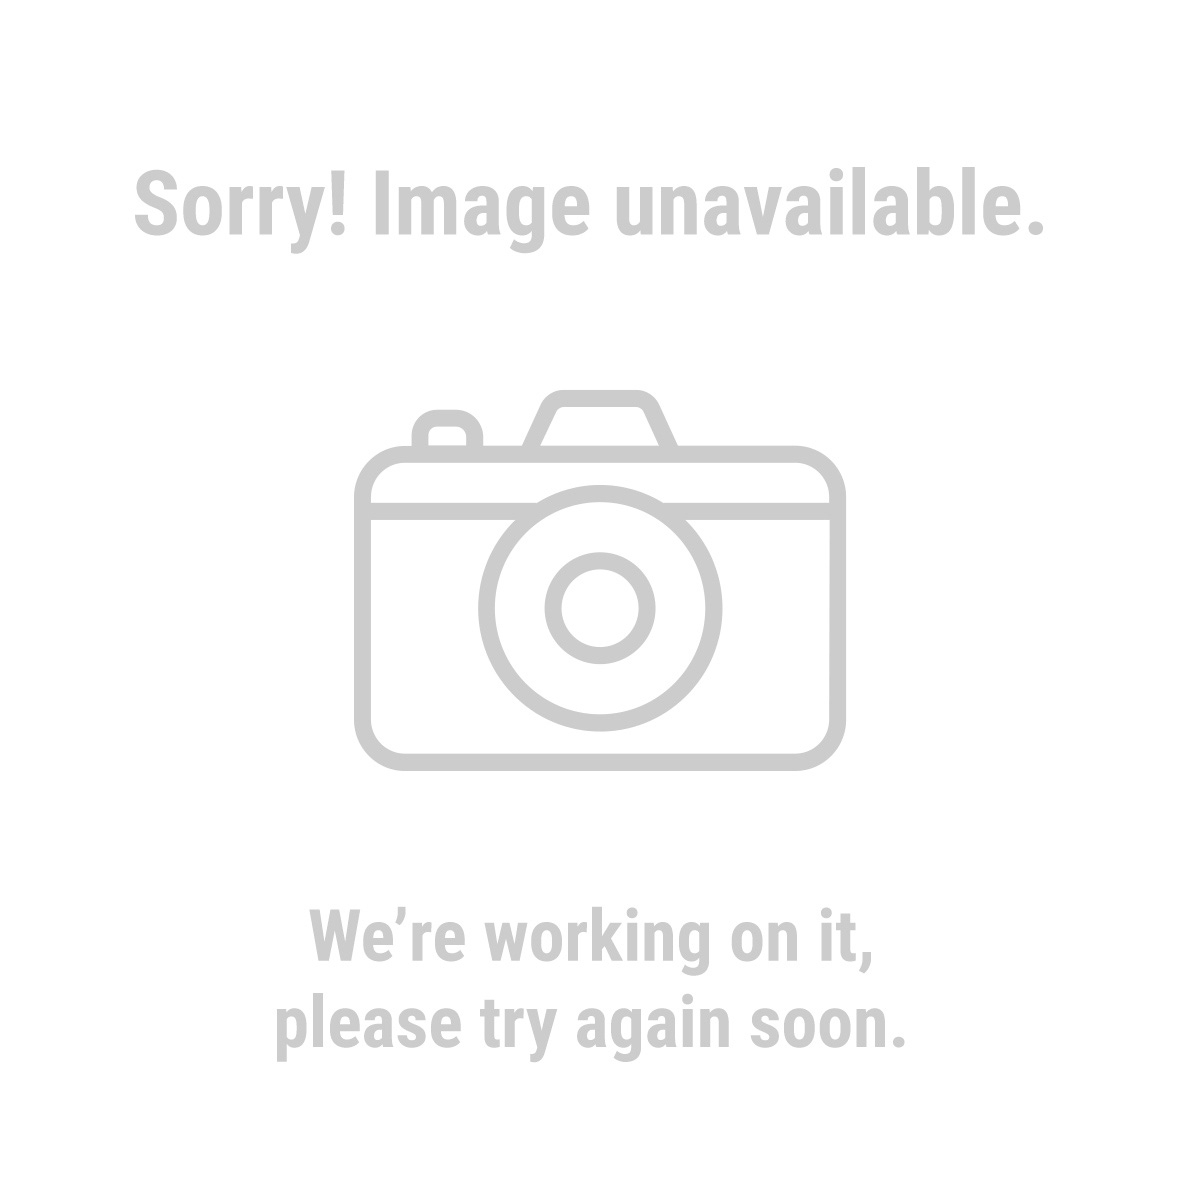 Chicago Electric Power Tools Professional Series 68988 7-1/4 in. 13 Amp Professional Worm Drive Framing Saw